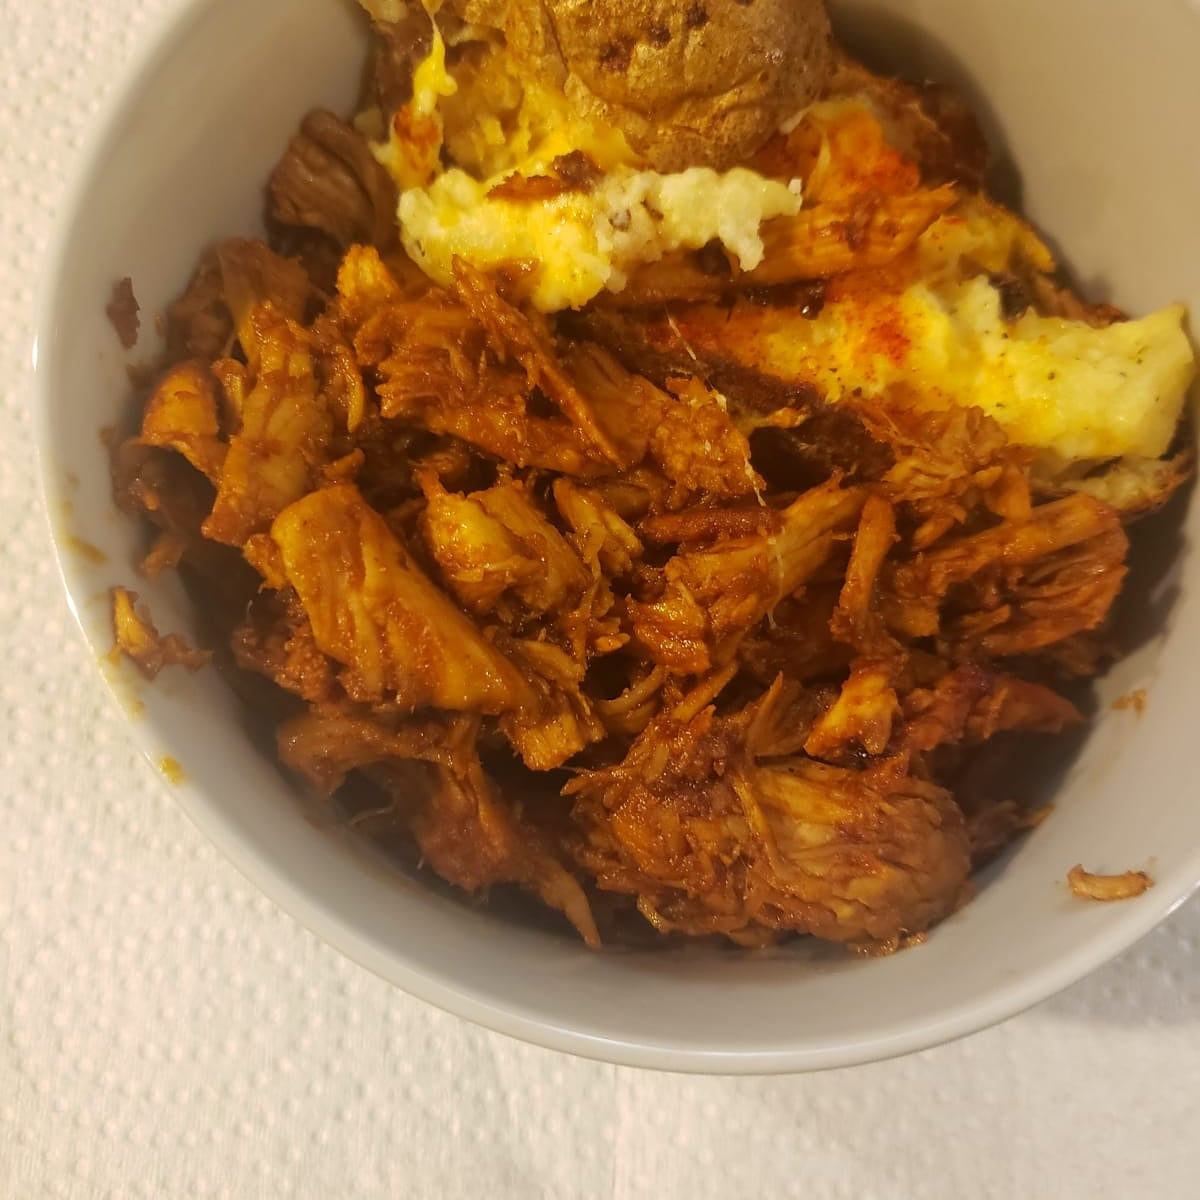 Homemade pulled chicken barbecue with a twice baked potato, 3-21.